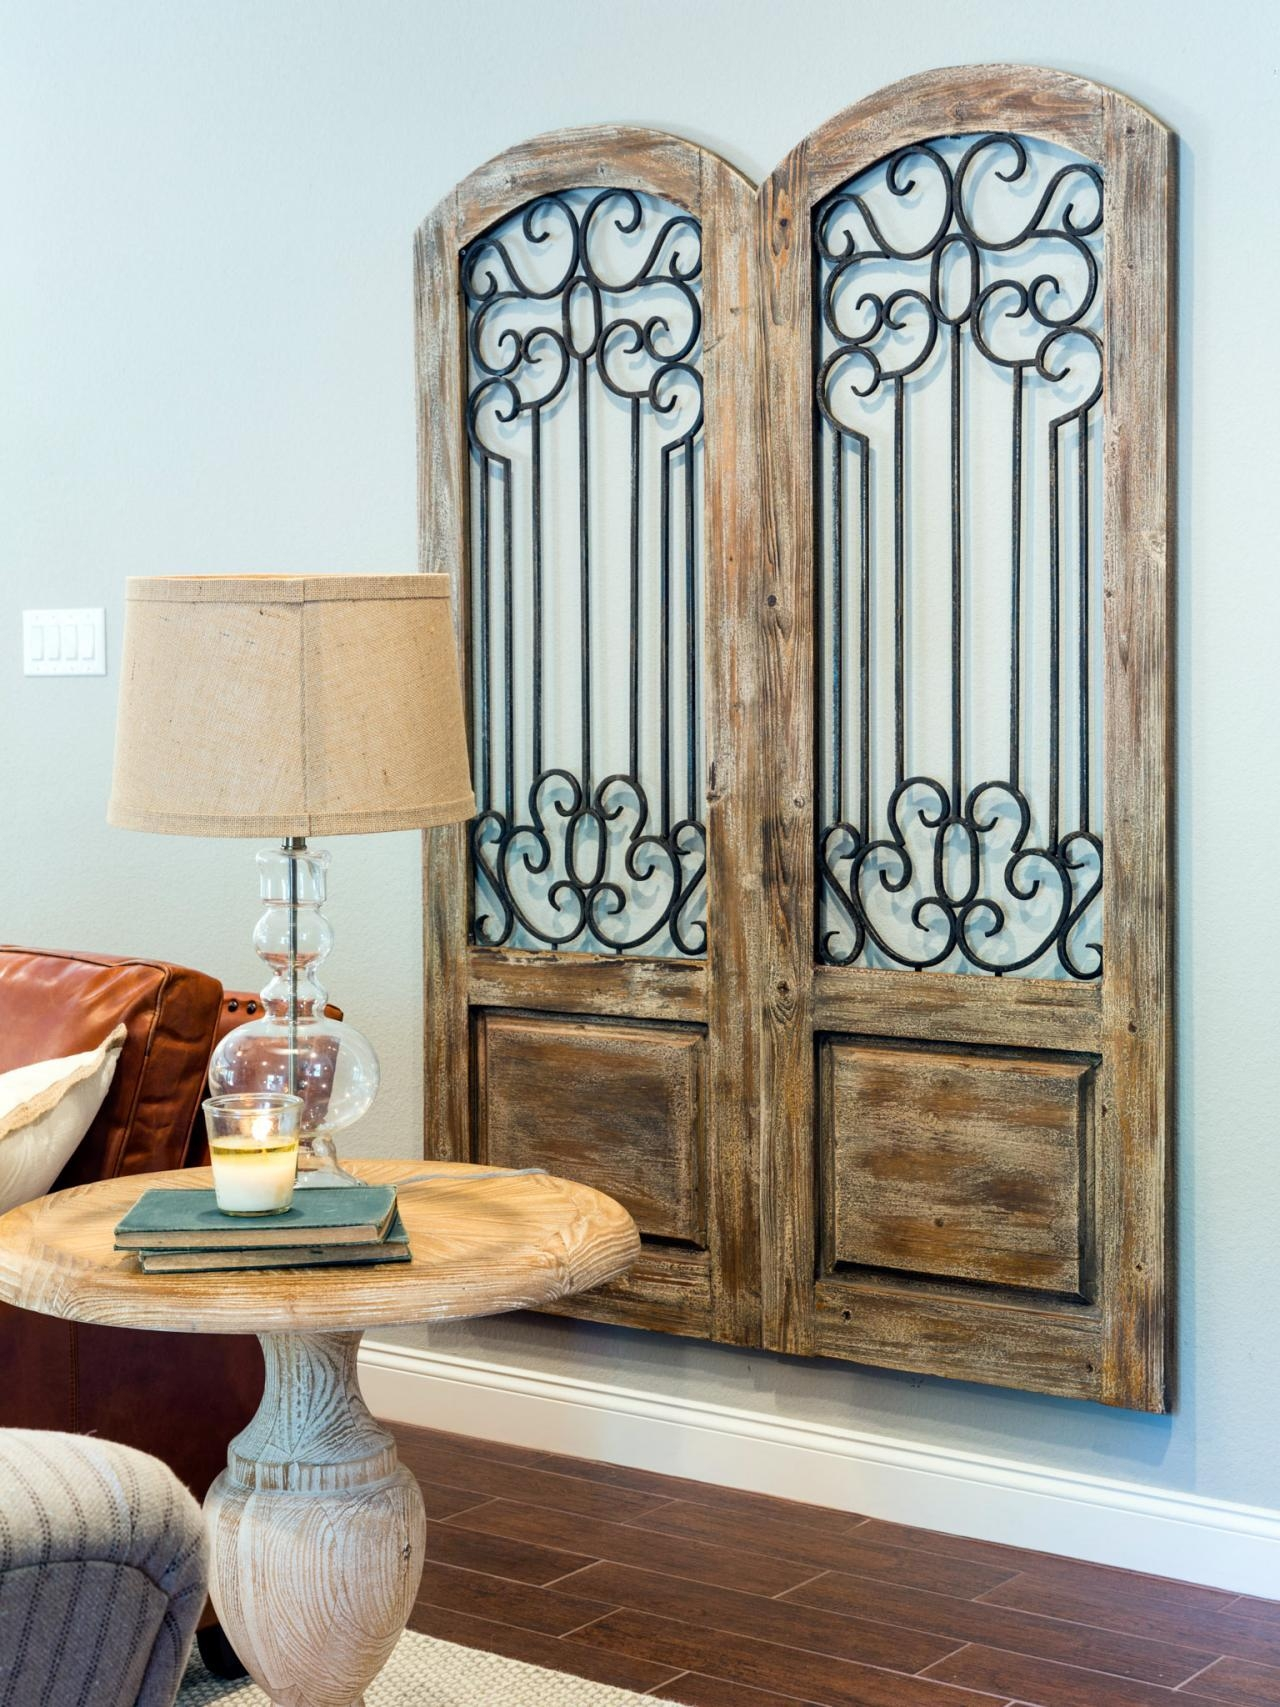 Garden Gate Wall Decor – Home Design And Decorating with regard to Metal Gate Wall Art